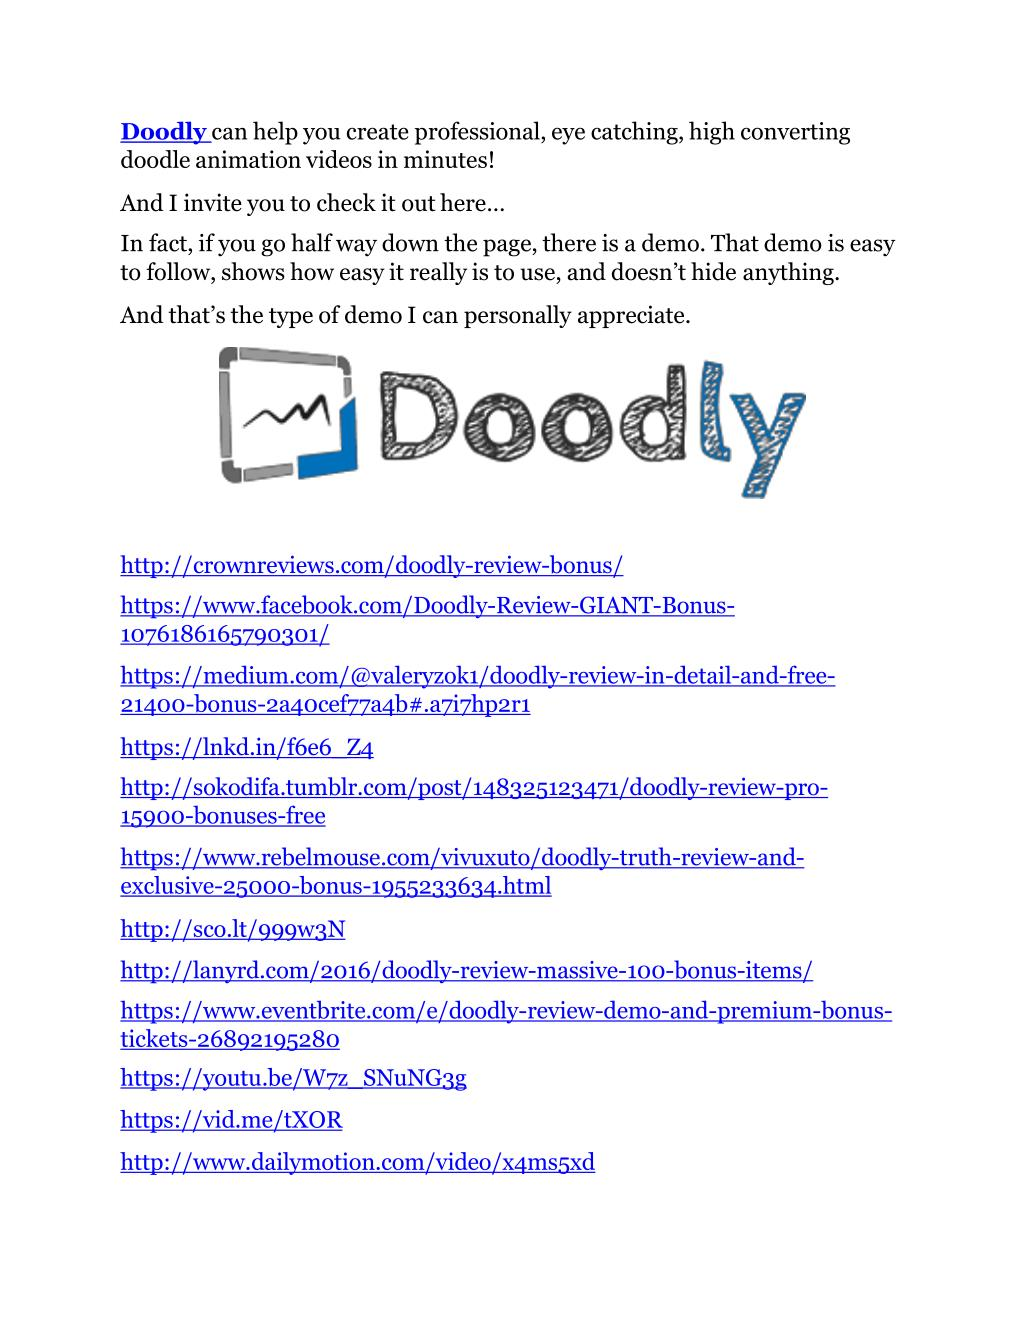 PPT - Doodly review & (GIANT) $24,700 bonus PowerPoint